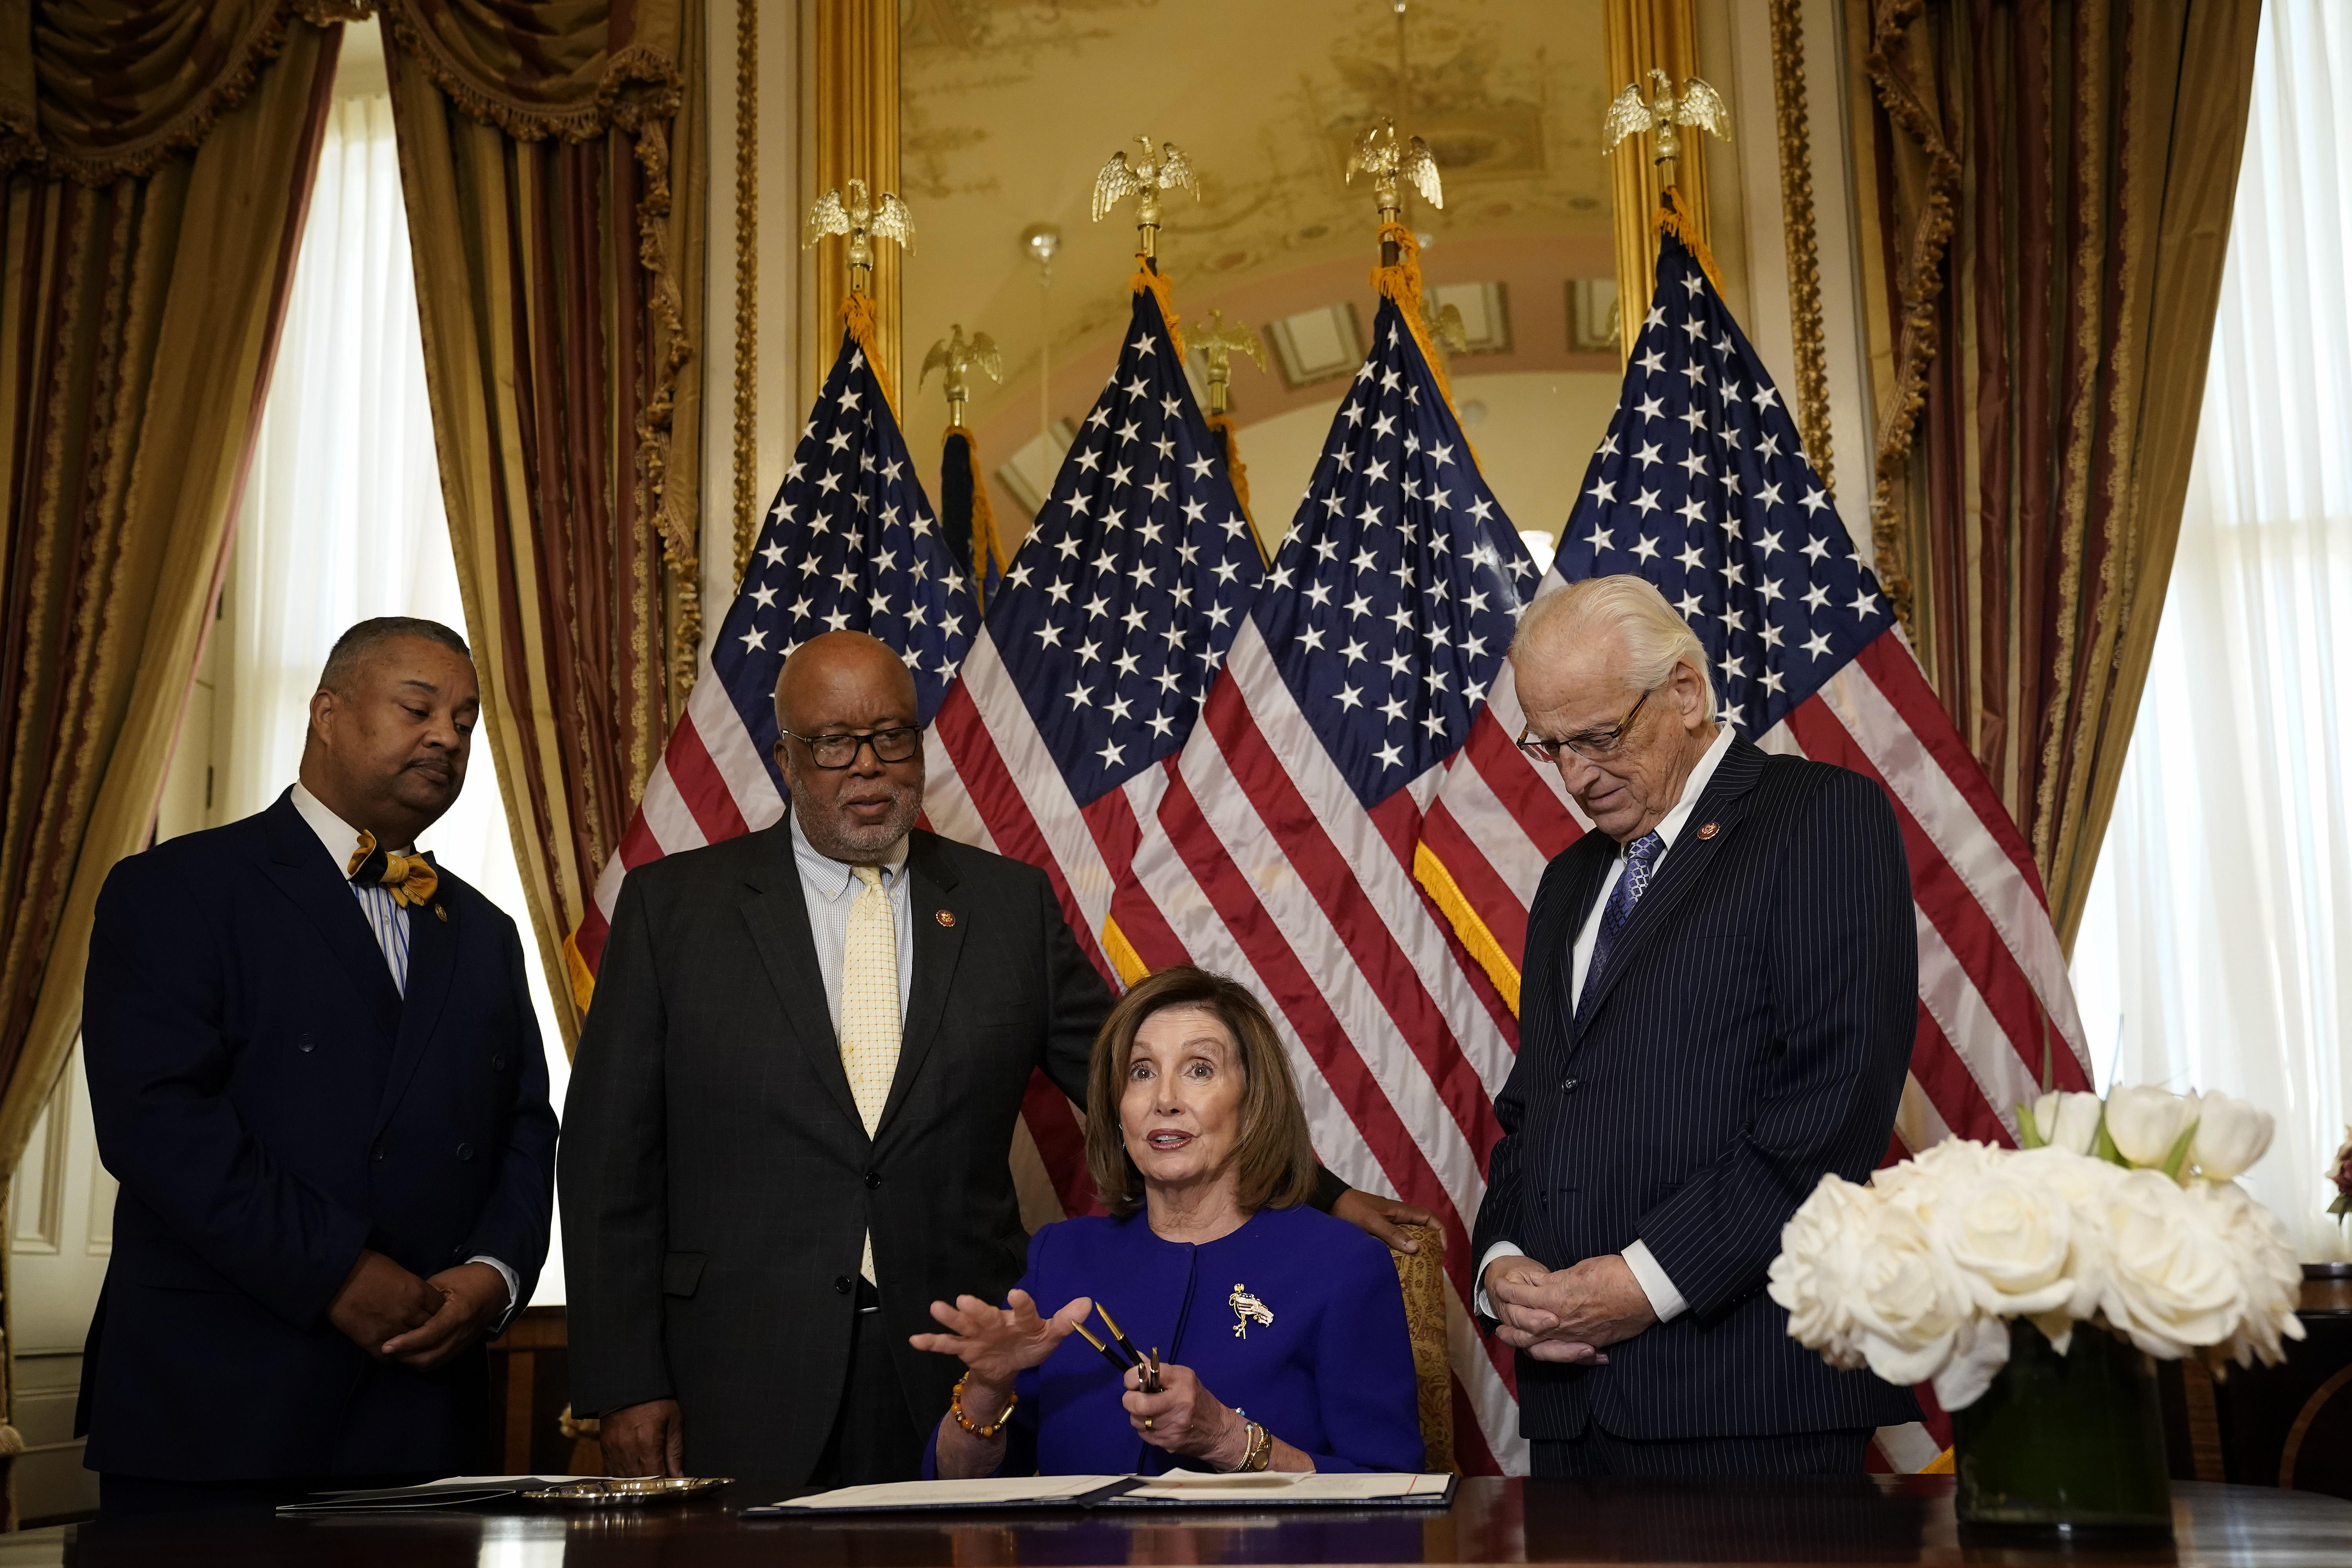 U.S. Speaker of the House Nancy Pelosi (D-CA) participates in a bill enrollment ceremony at the U.S. Capitol January 9, 2020 in Washington, DC. (Win McNamee/Getty Images)